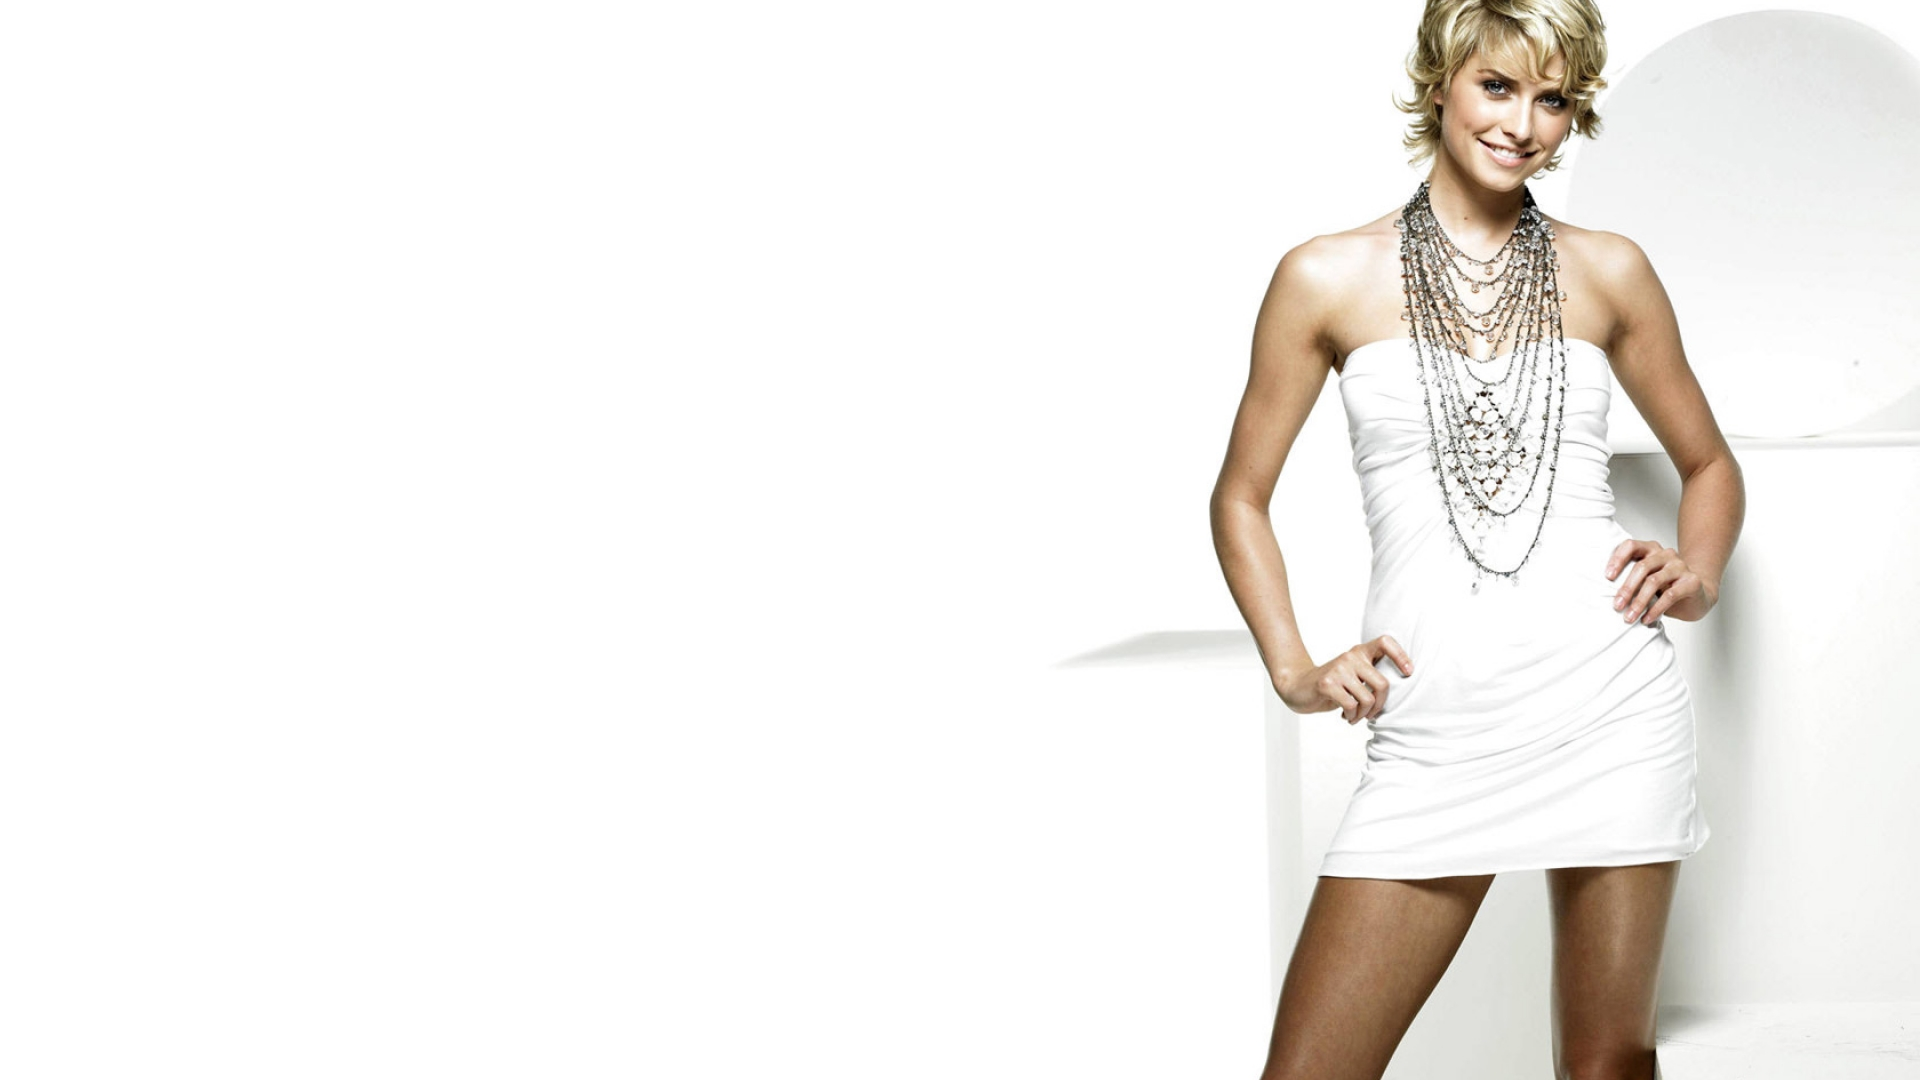 High Resolution Wallpaper | Lena Gercke 1920x1080 px